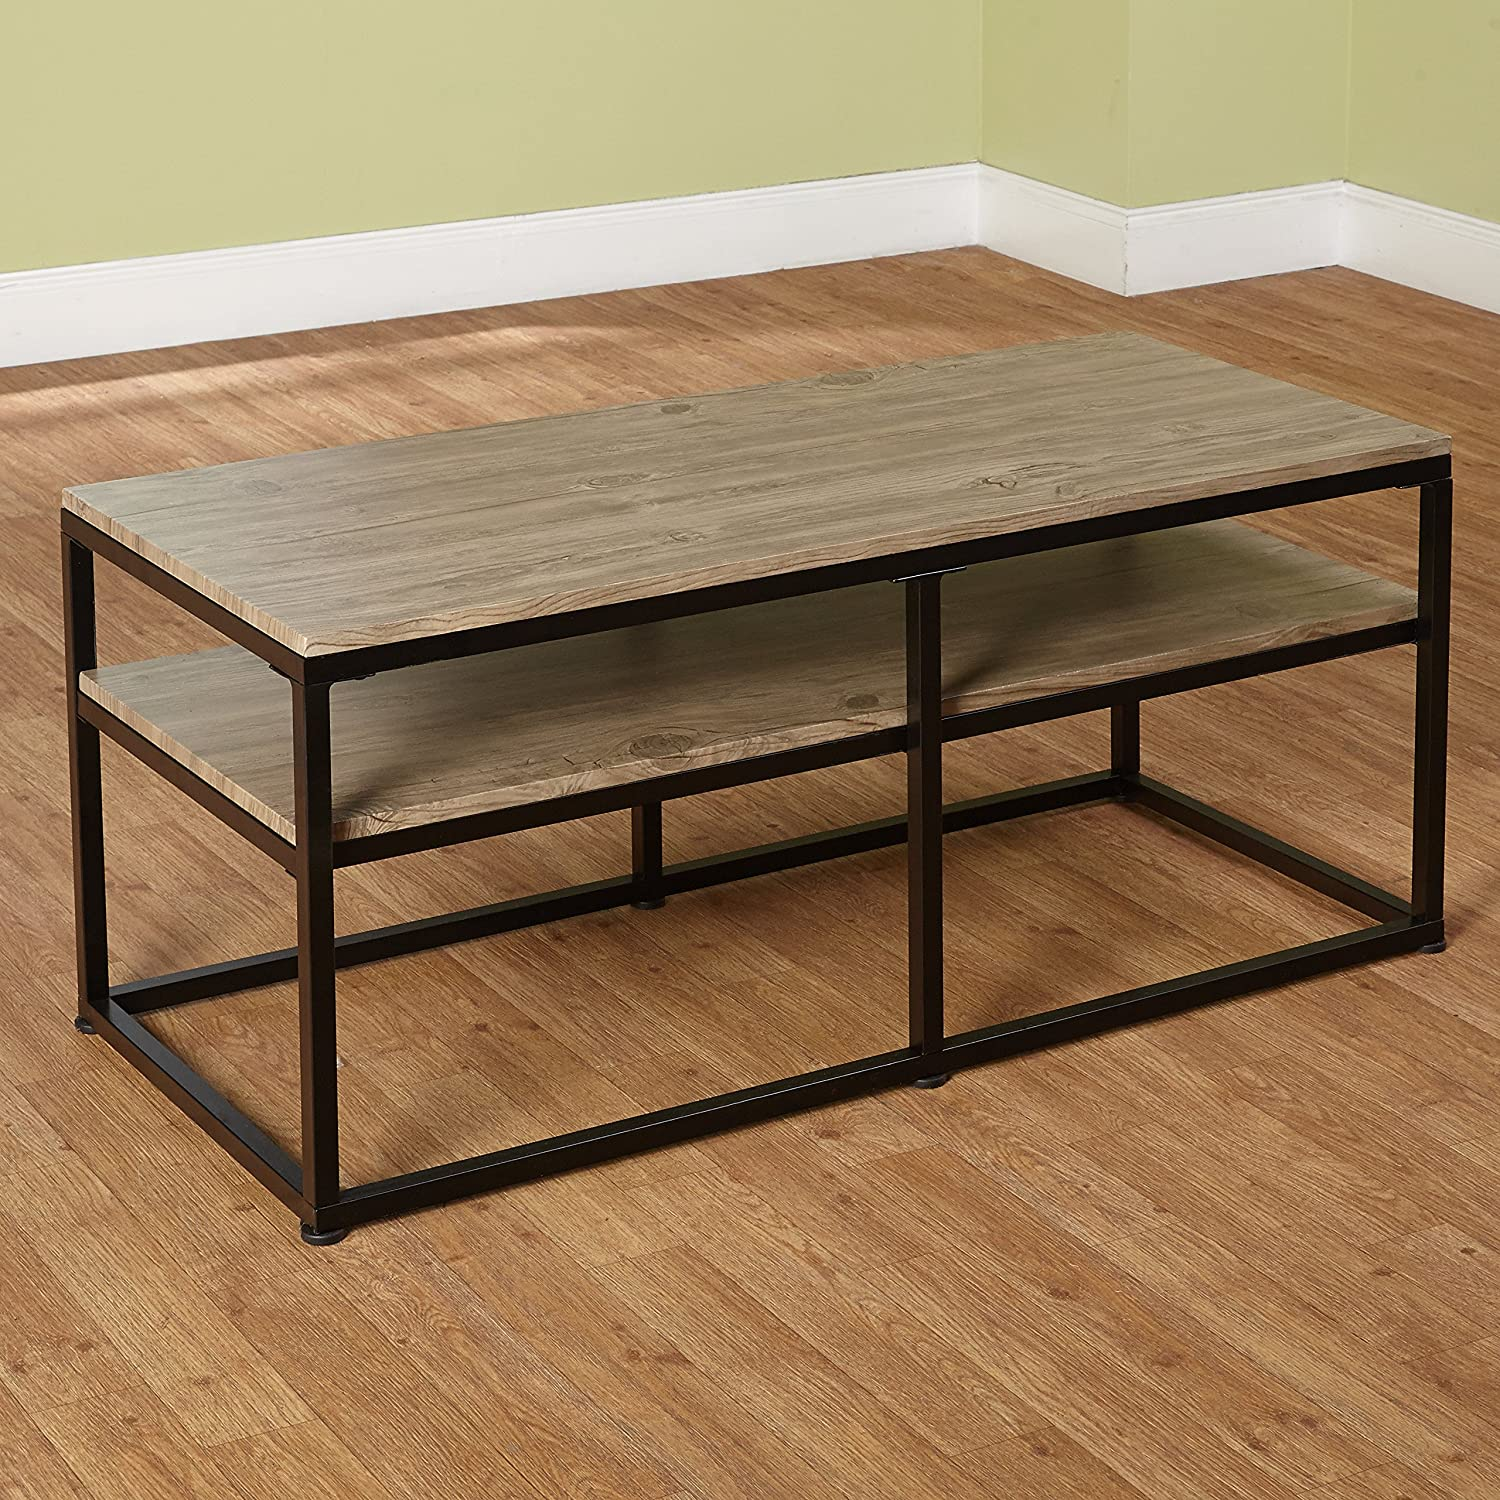 Target Marketing Systems Piazza Collection Modern Reclaimed Sleek Coffee Table, with Open Shelves, Wood Metal